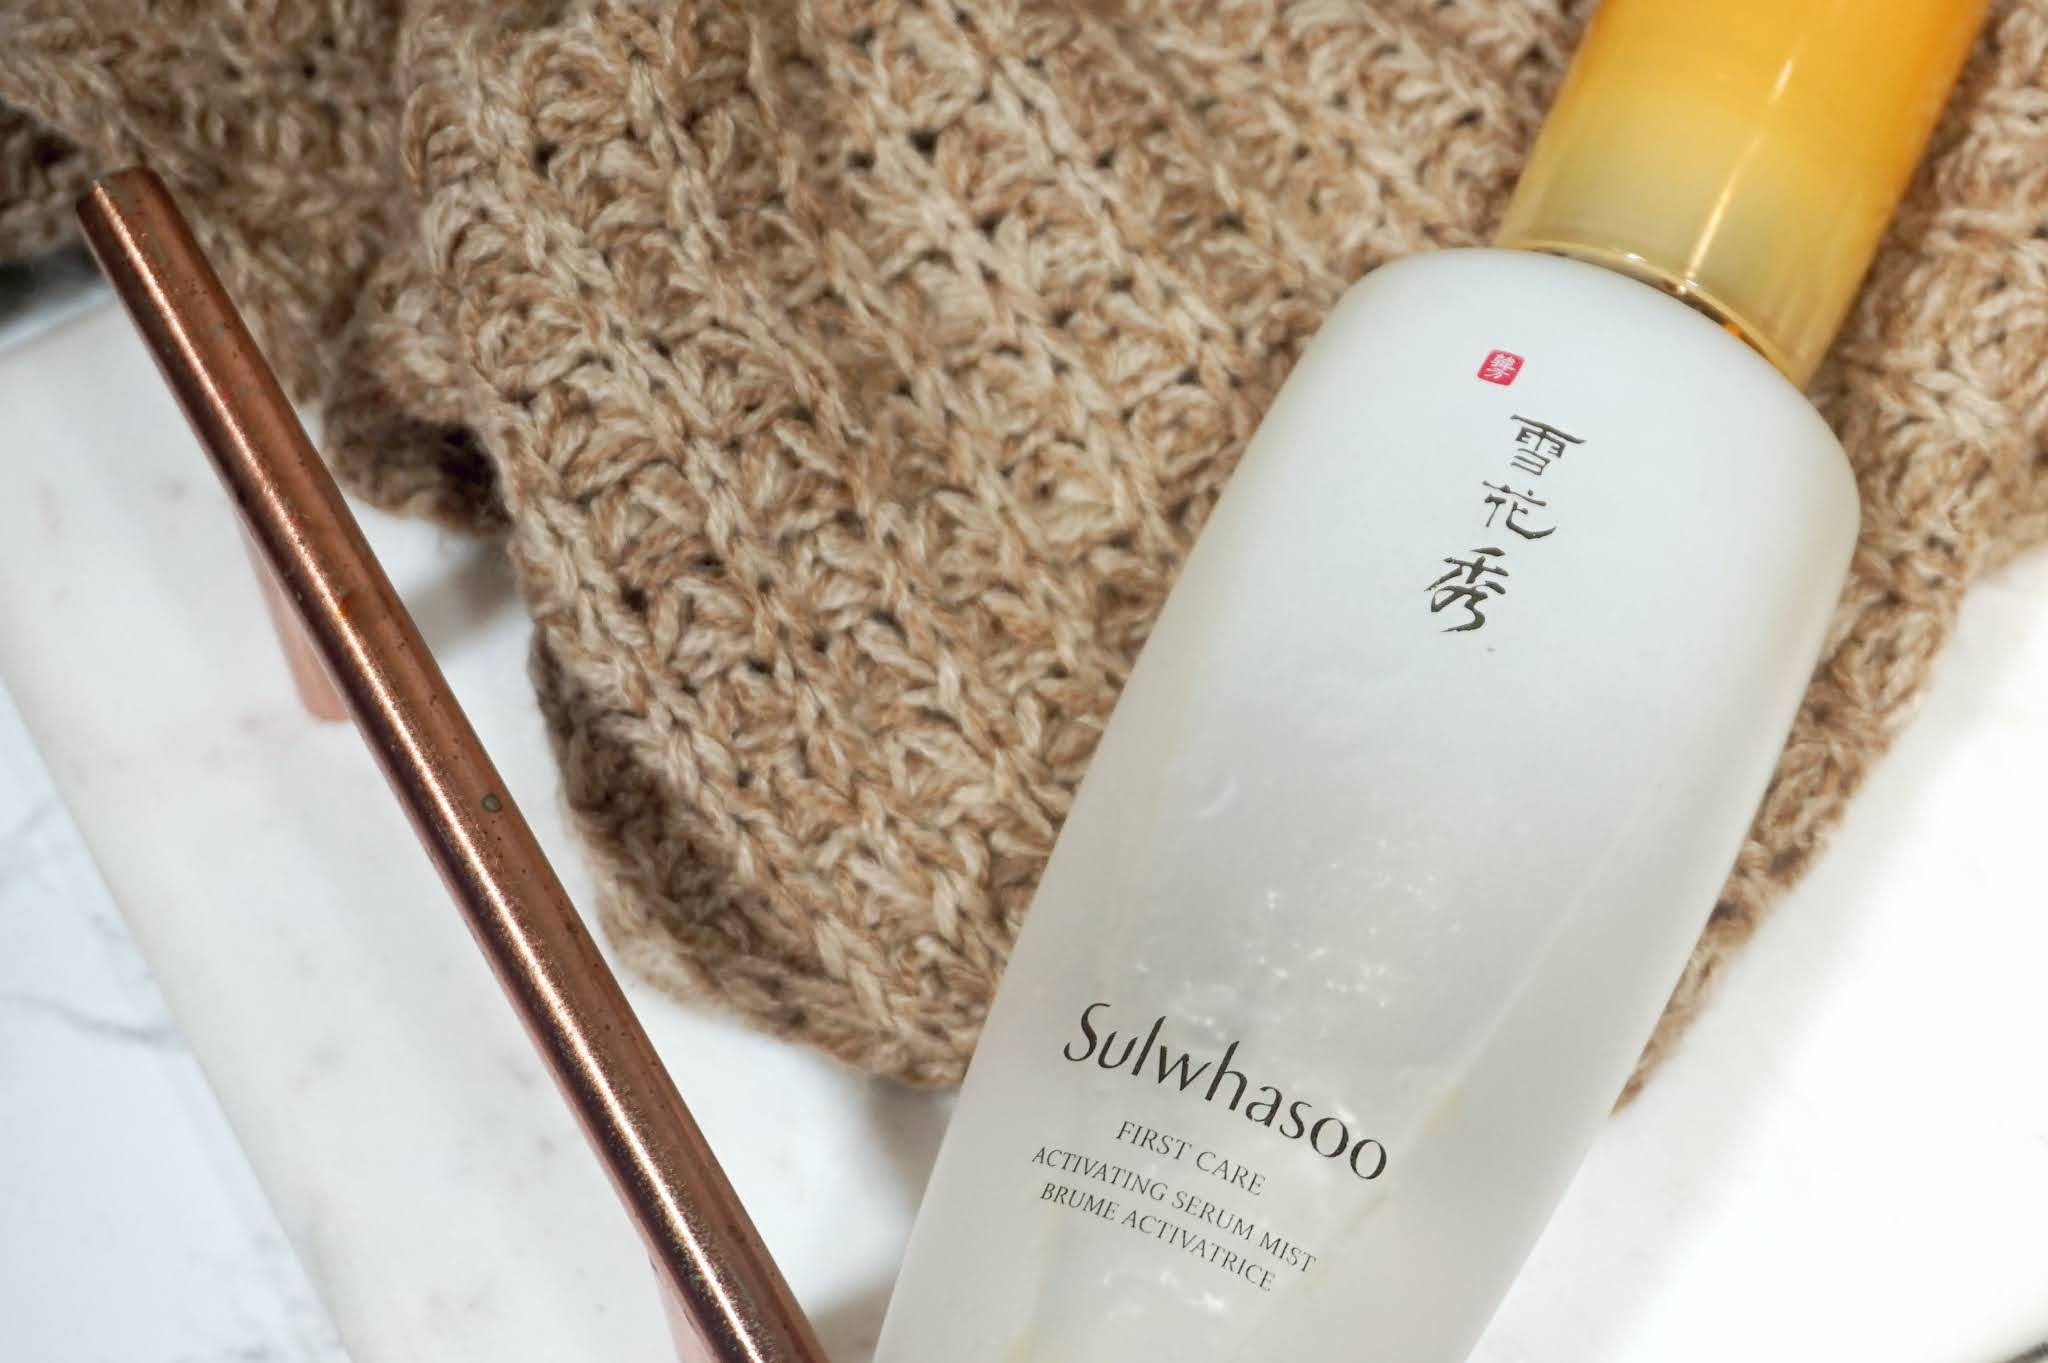 Sulwhasoo First Care Activating Serum Mist Review